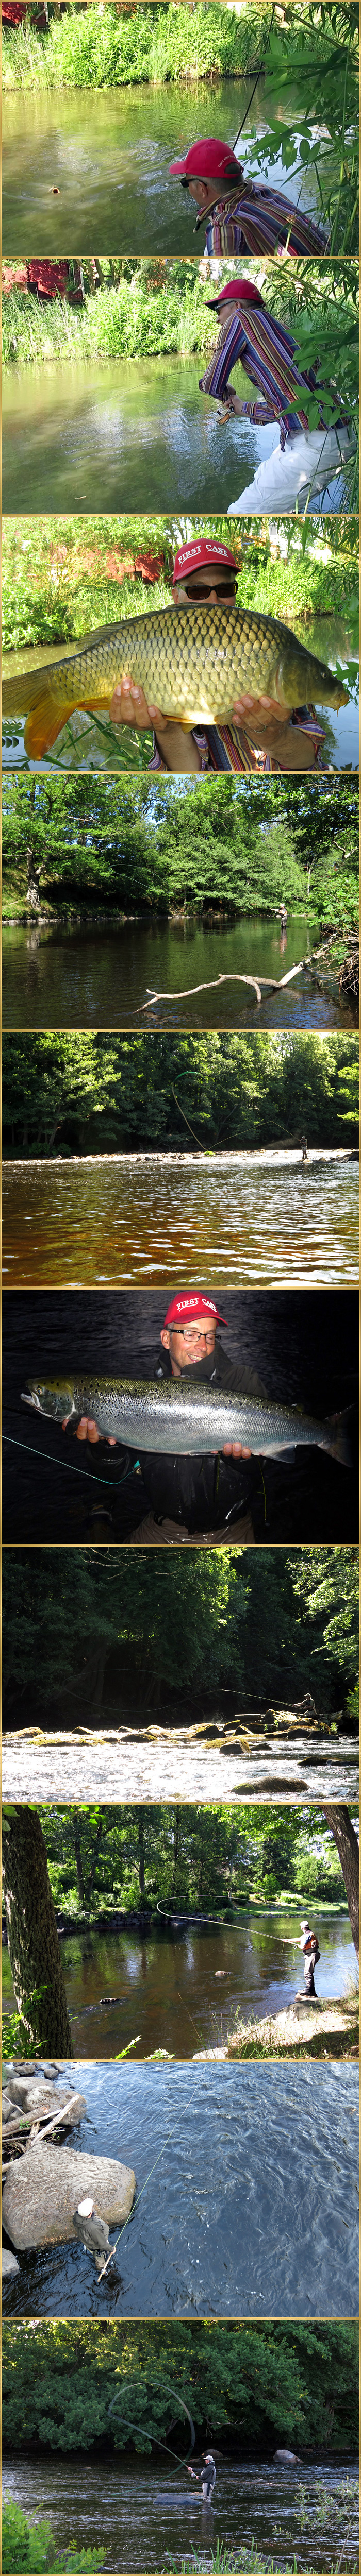 fly fishing atlantic salmon